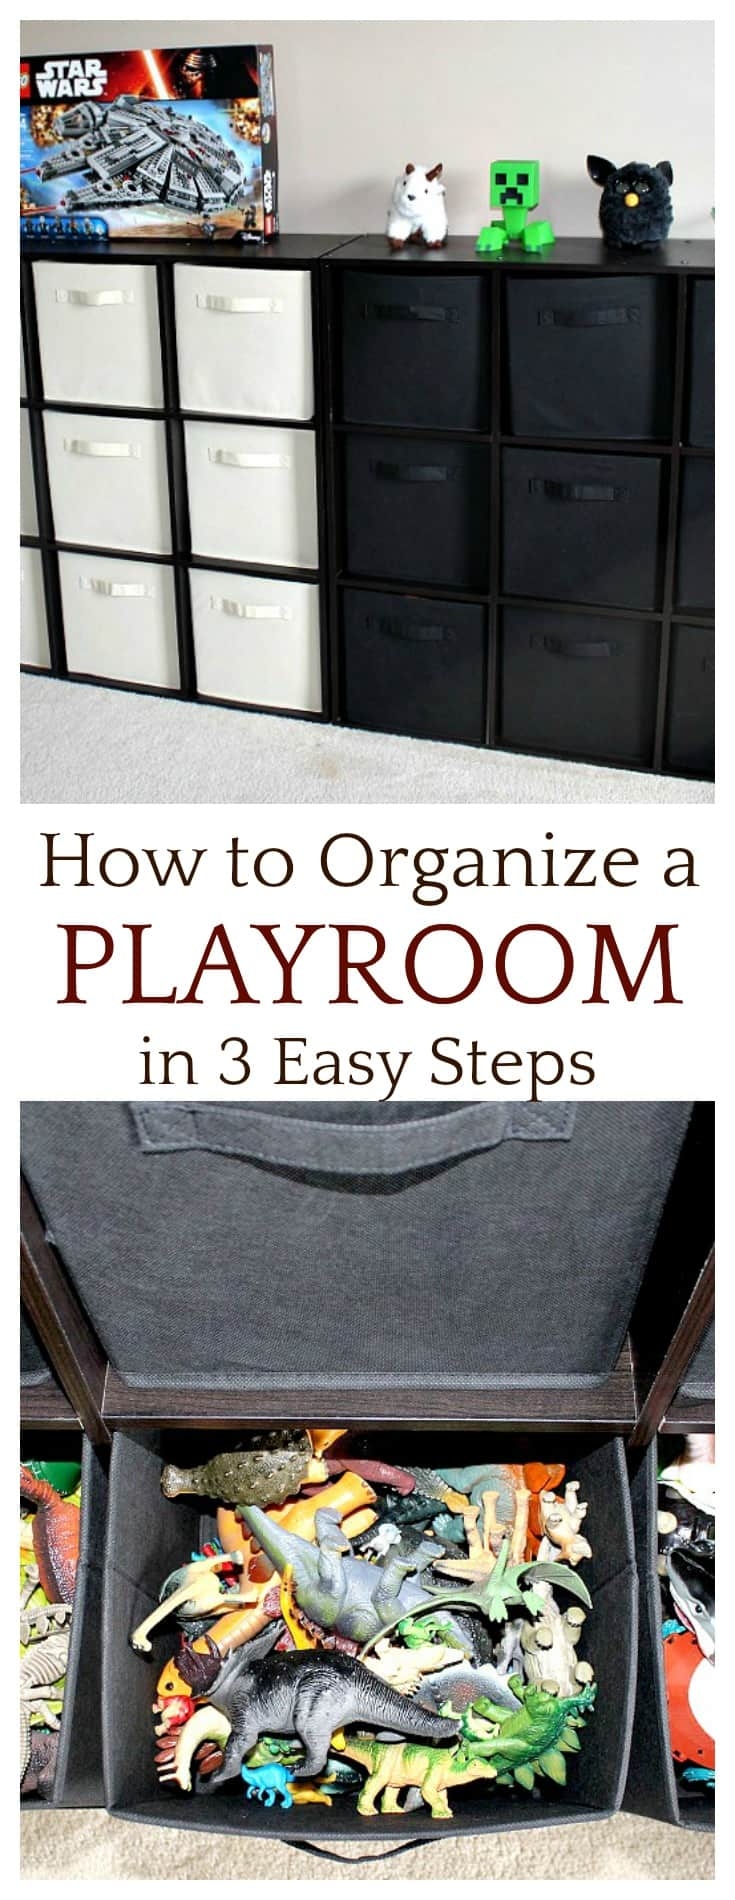 There are only 3 steps to take to organize a playroom. I'm not saying it will be quick, but it's worth it - especially when you follow through with the last step - setting rules.